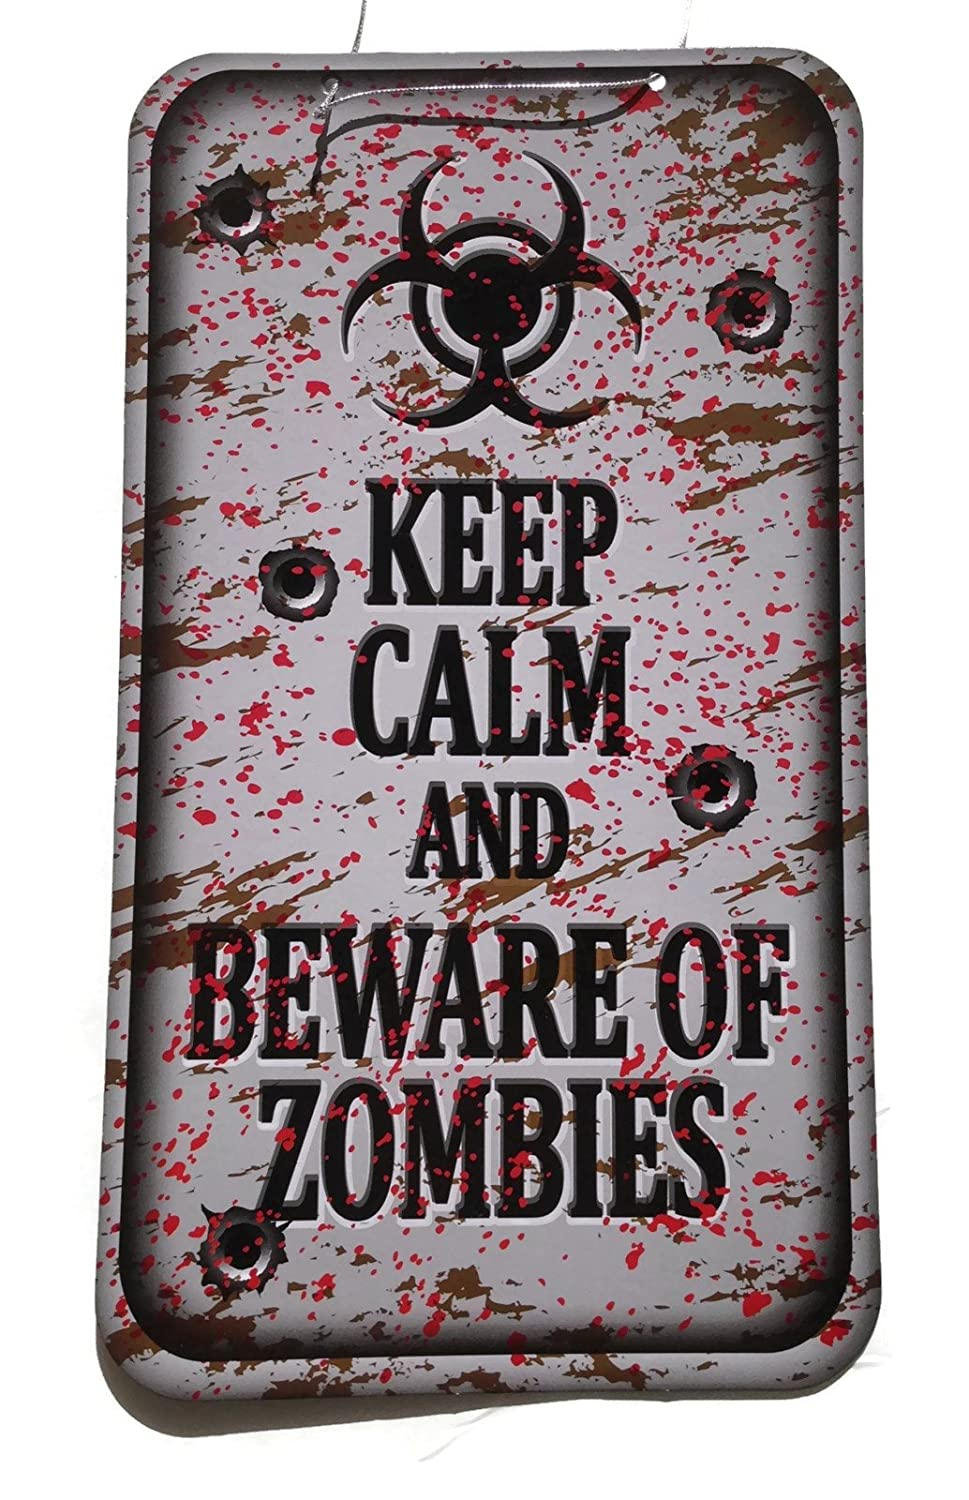 Post-Apocalyptic gift: Beware of Zombies sign